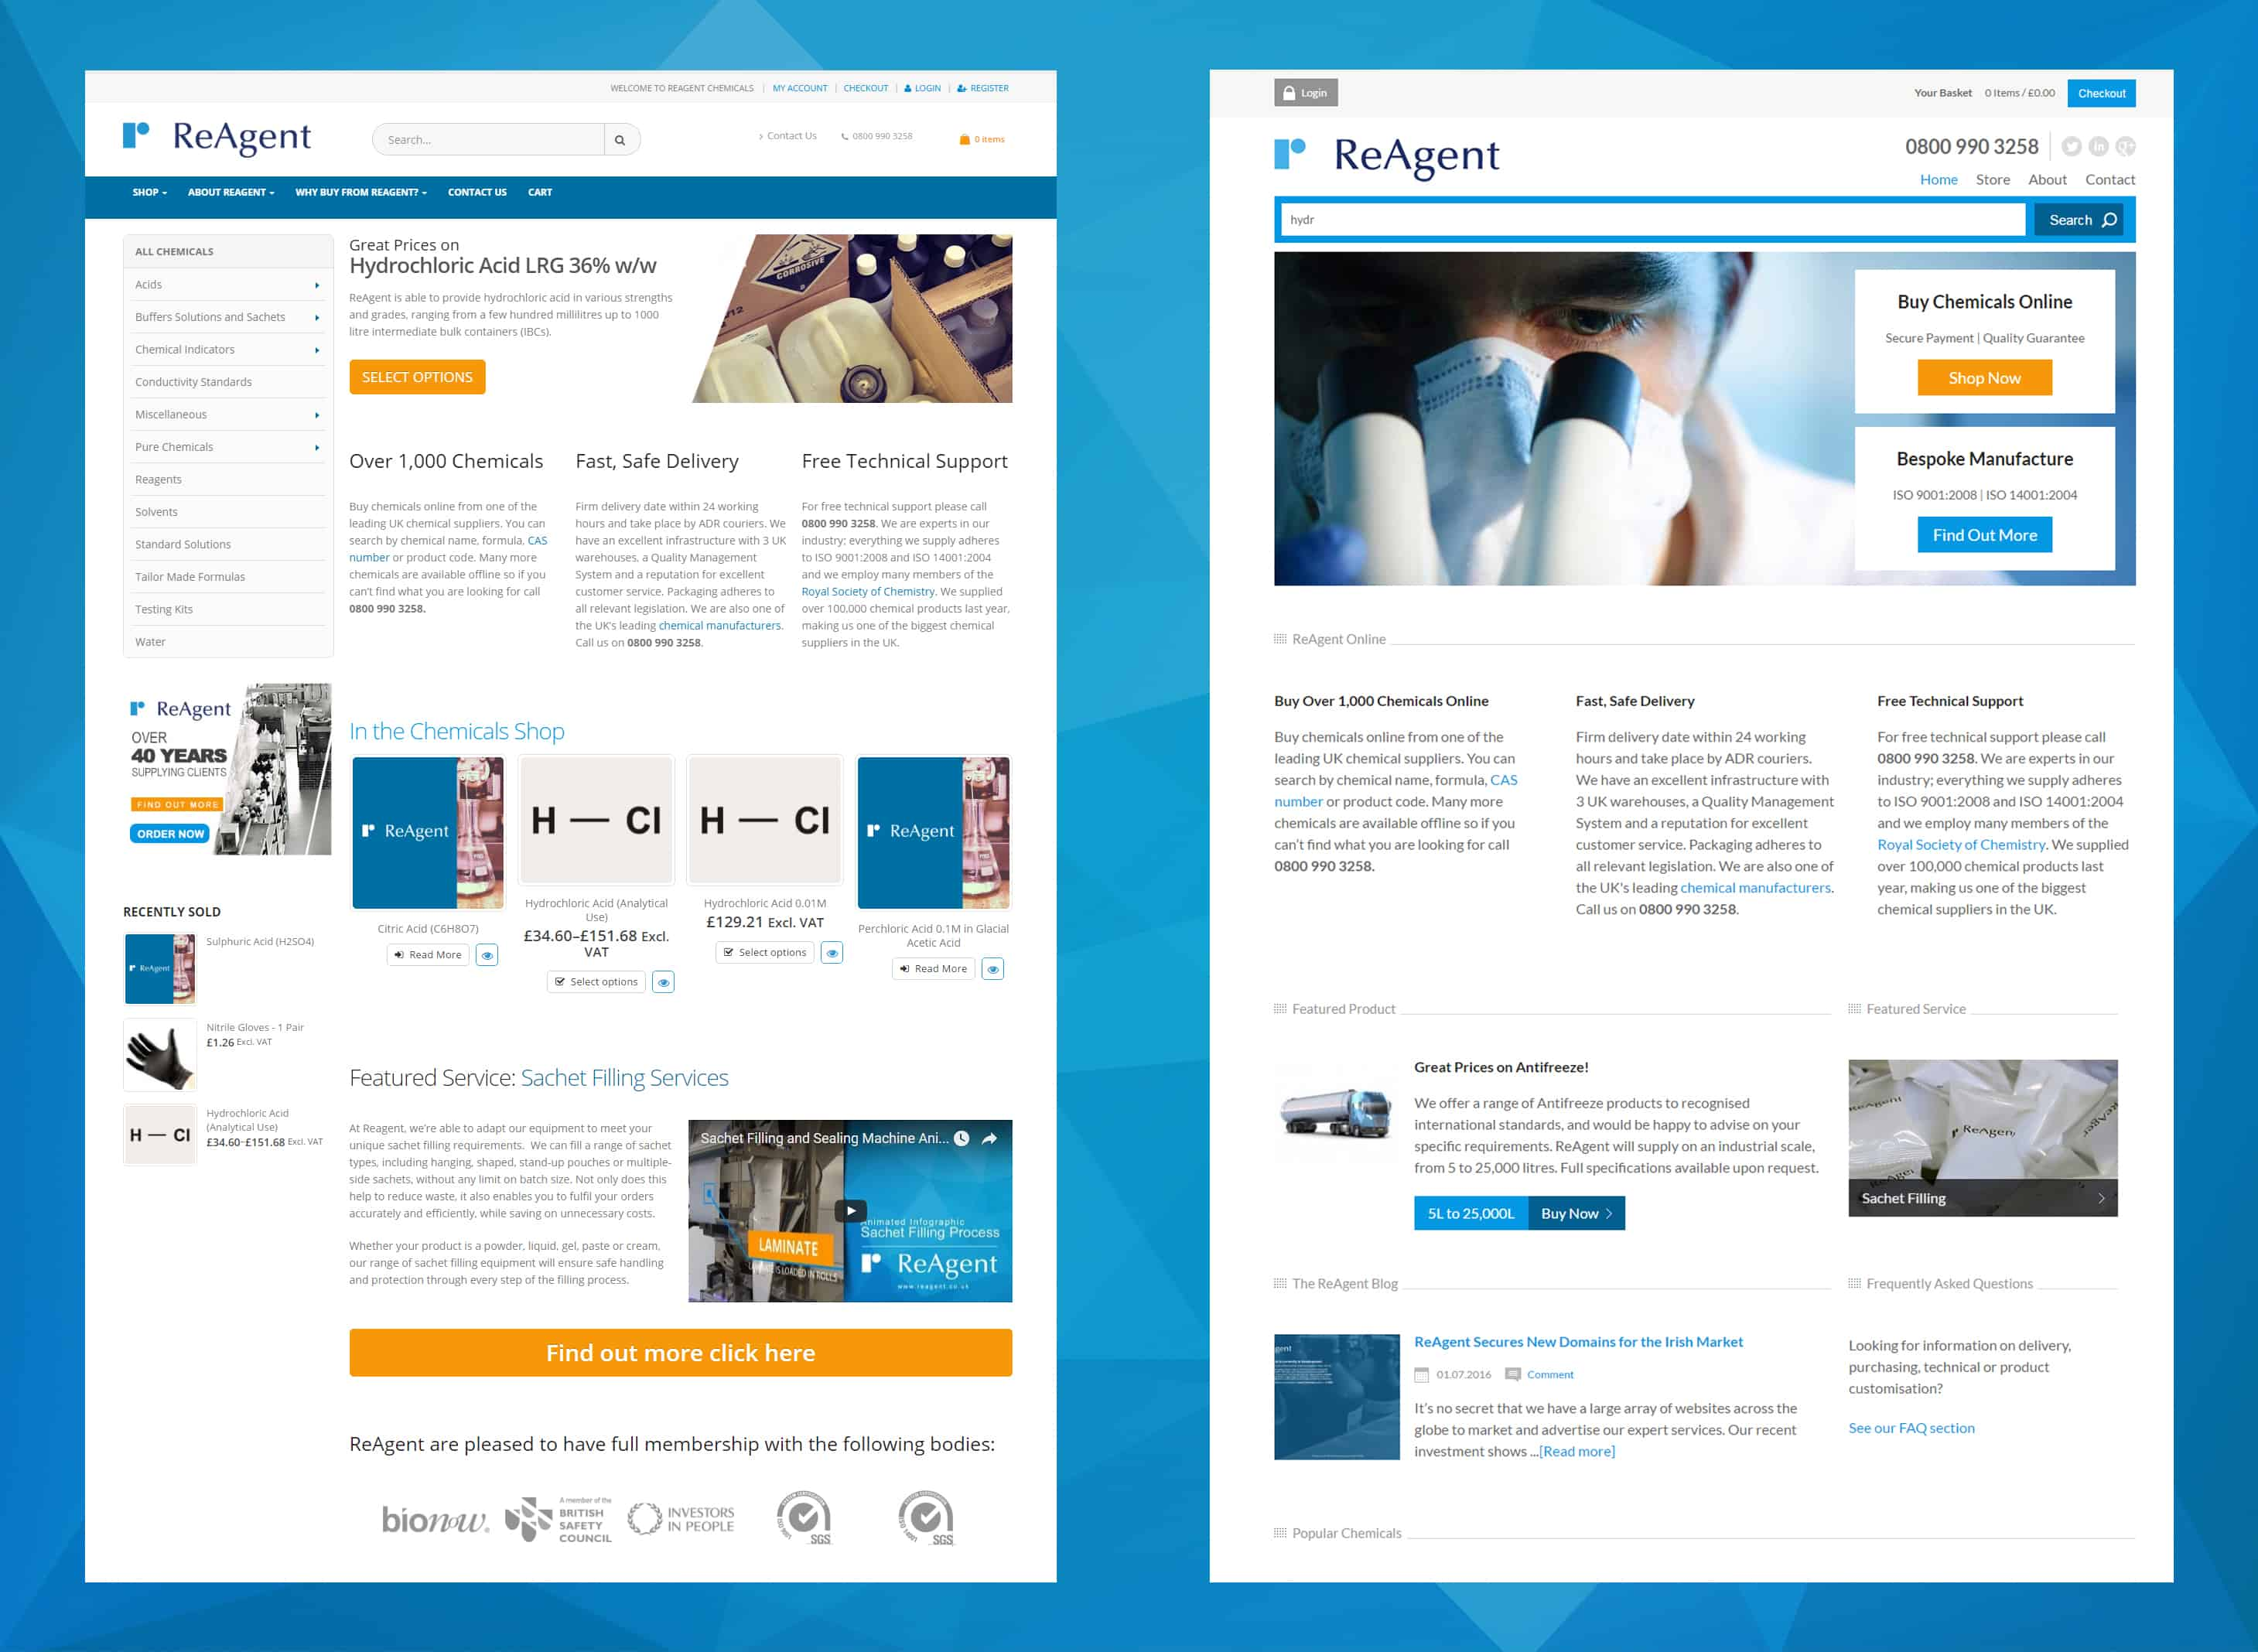 ReAgent rebuilds Chemicals.co.uk. New website (Left) in Comparison to the Old Development (Right)